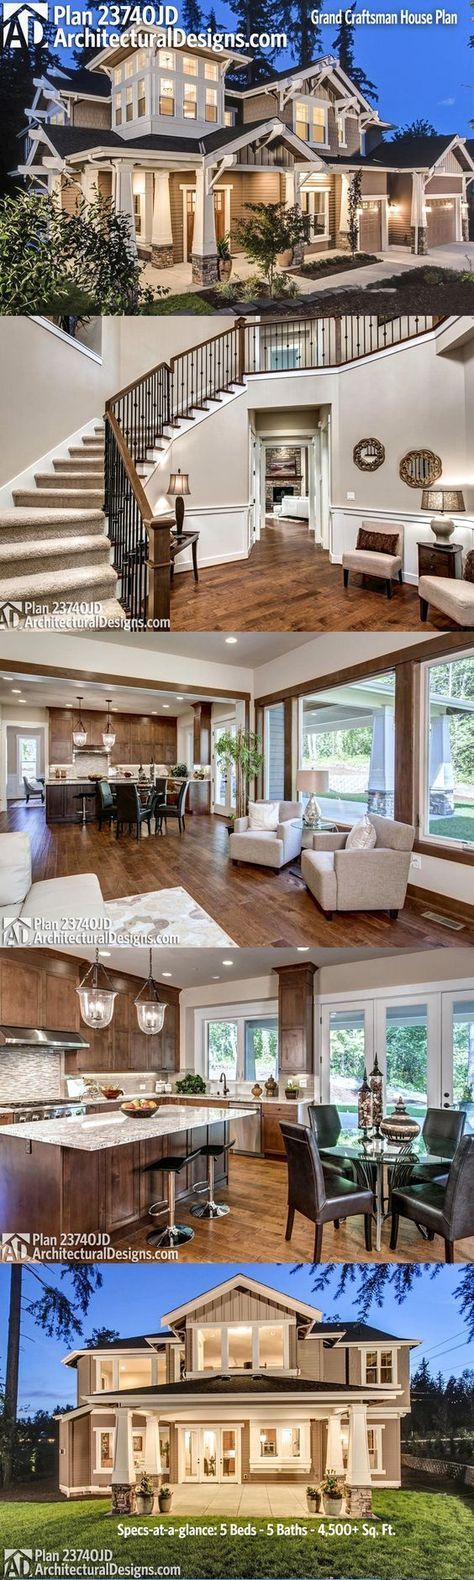 Love the sweeping staircase in this place!  Craftsman House Plan 23740JD 5 beds, 5 baths and over 4,500 square feet of living space.